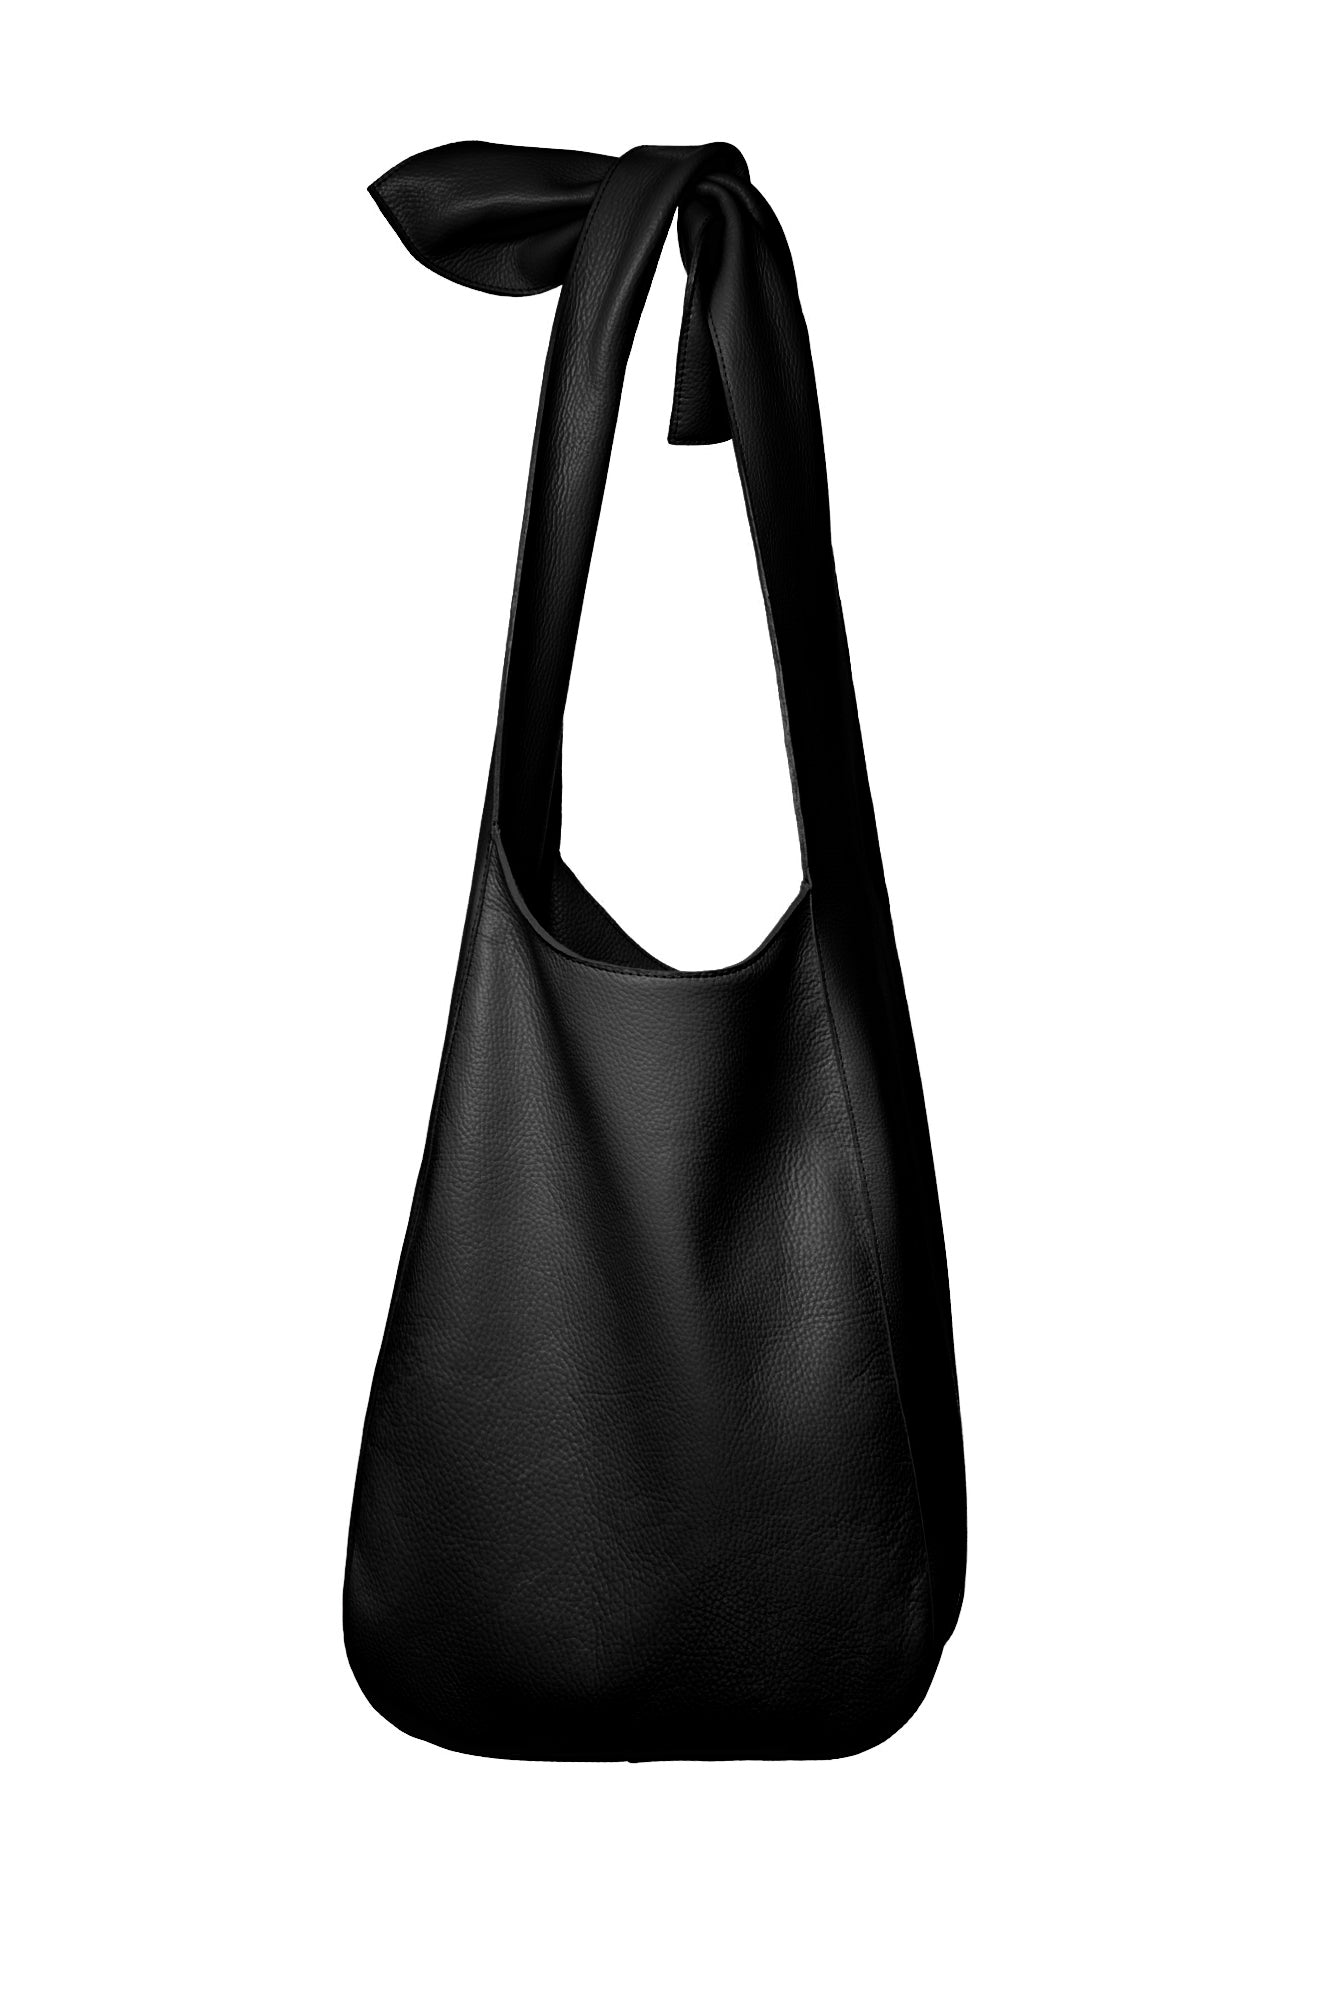 The Donna Hobo Bag in Black